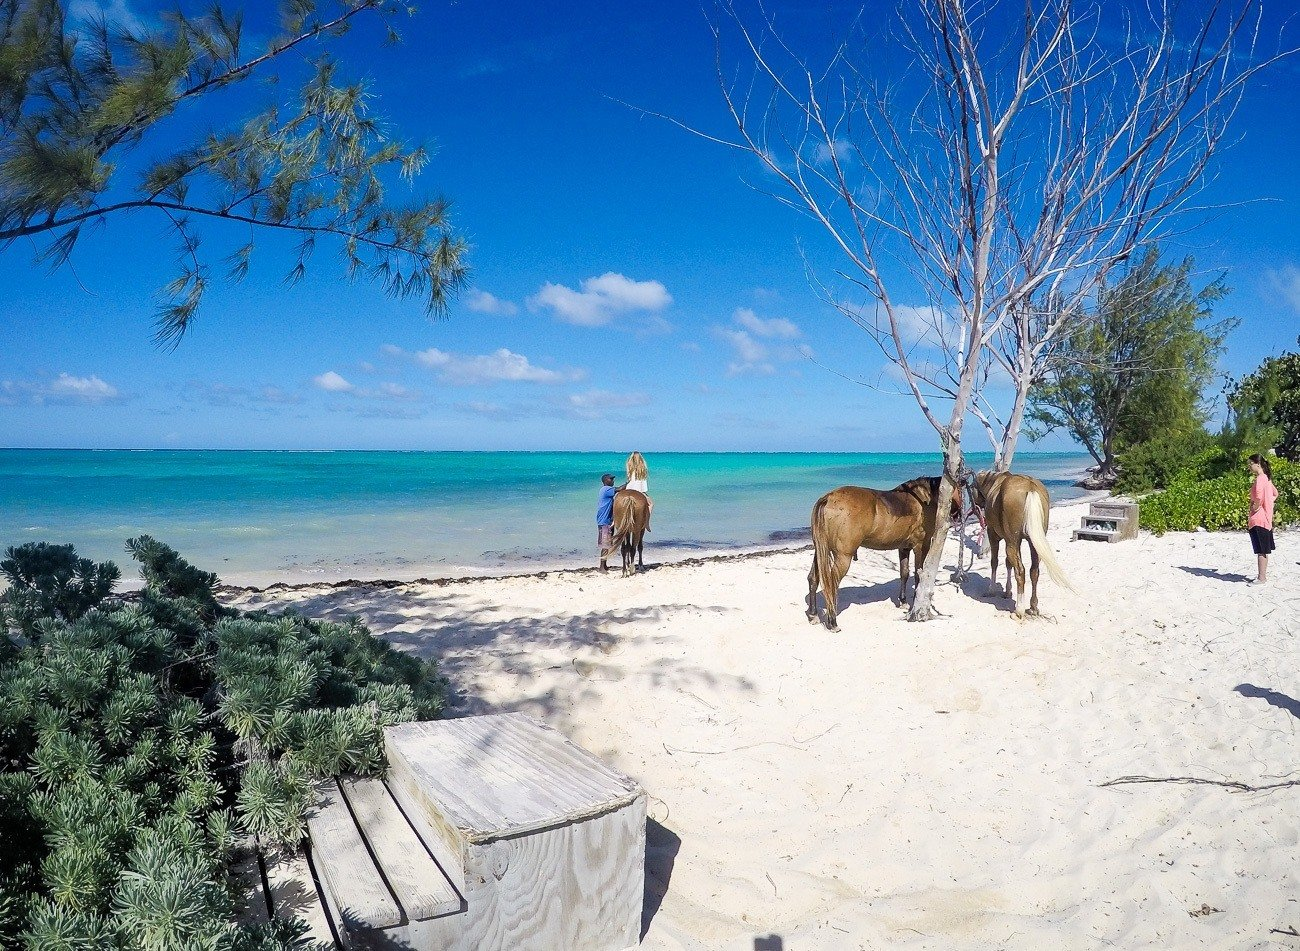 Take a horseback riding and swimming tour in the Cayman Islands with Pampered Ponies